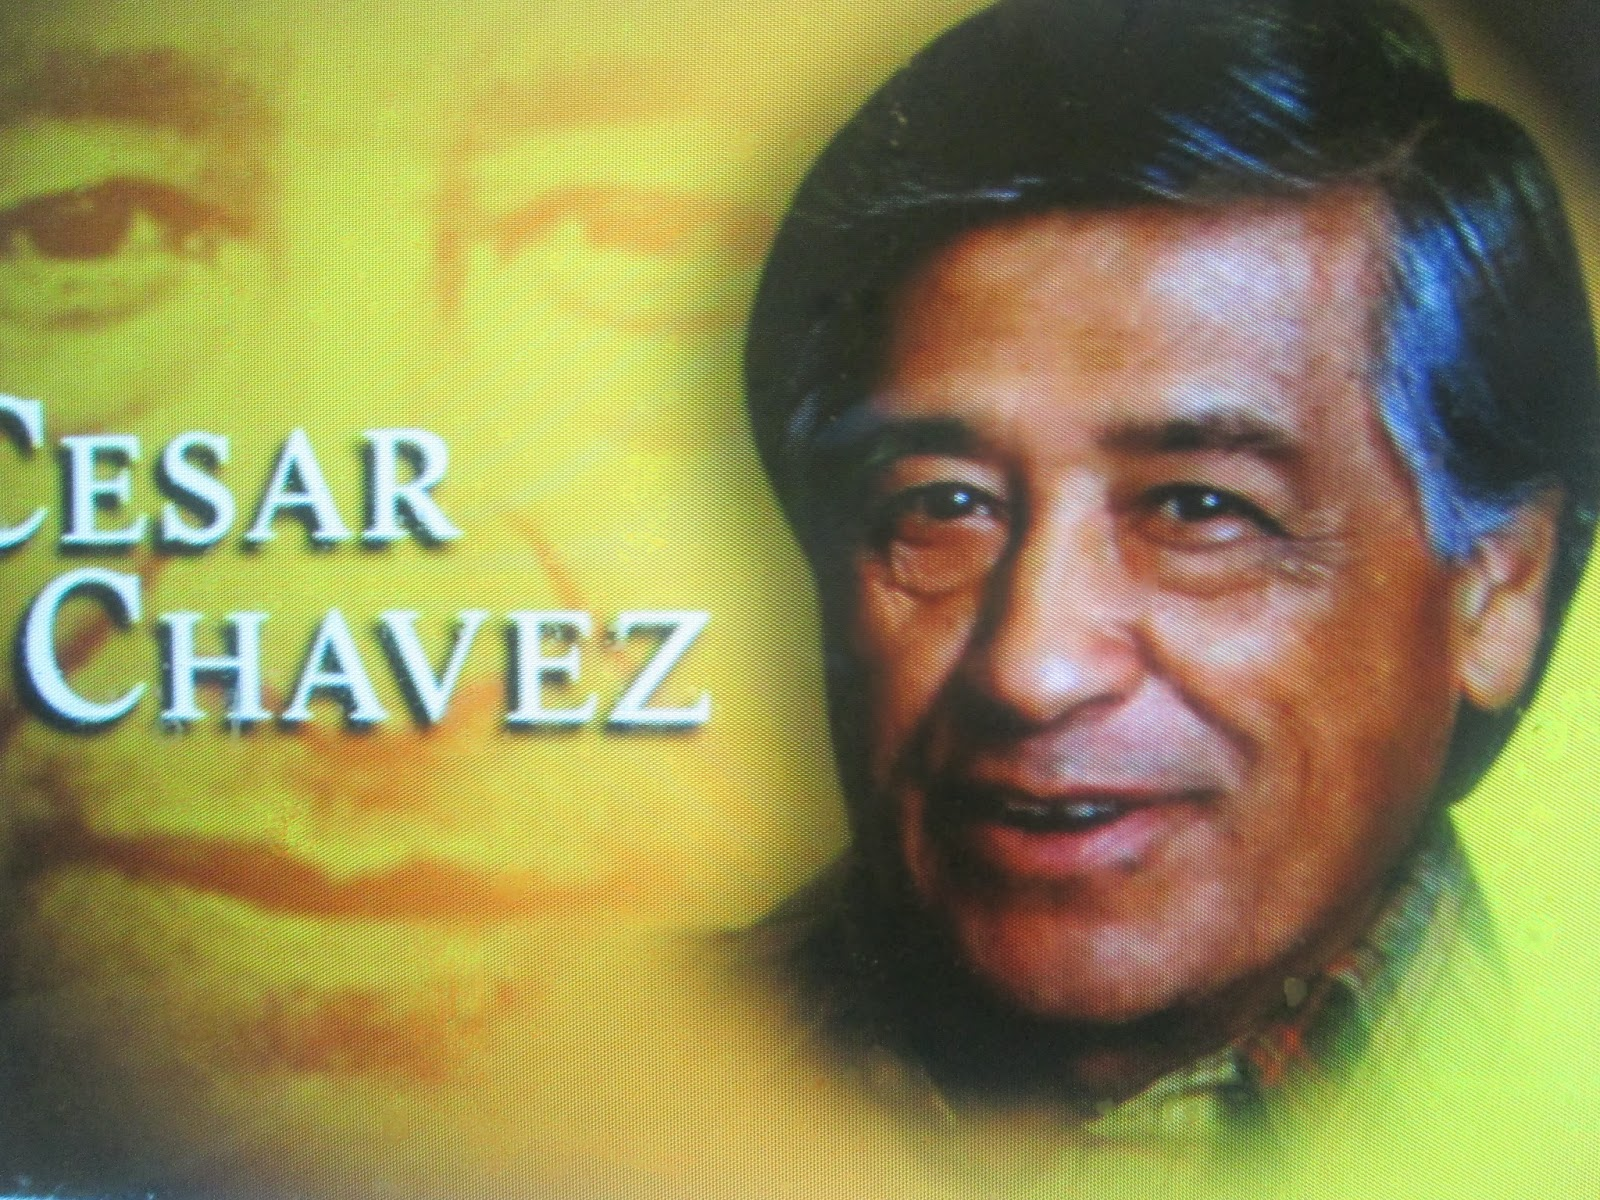 Cesar Chavez: Latino World: Why I Celebrate Cesar Chavez